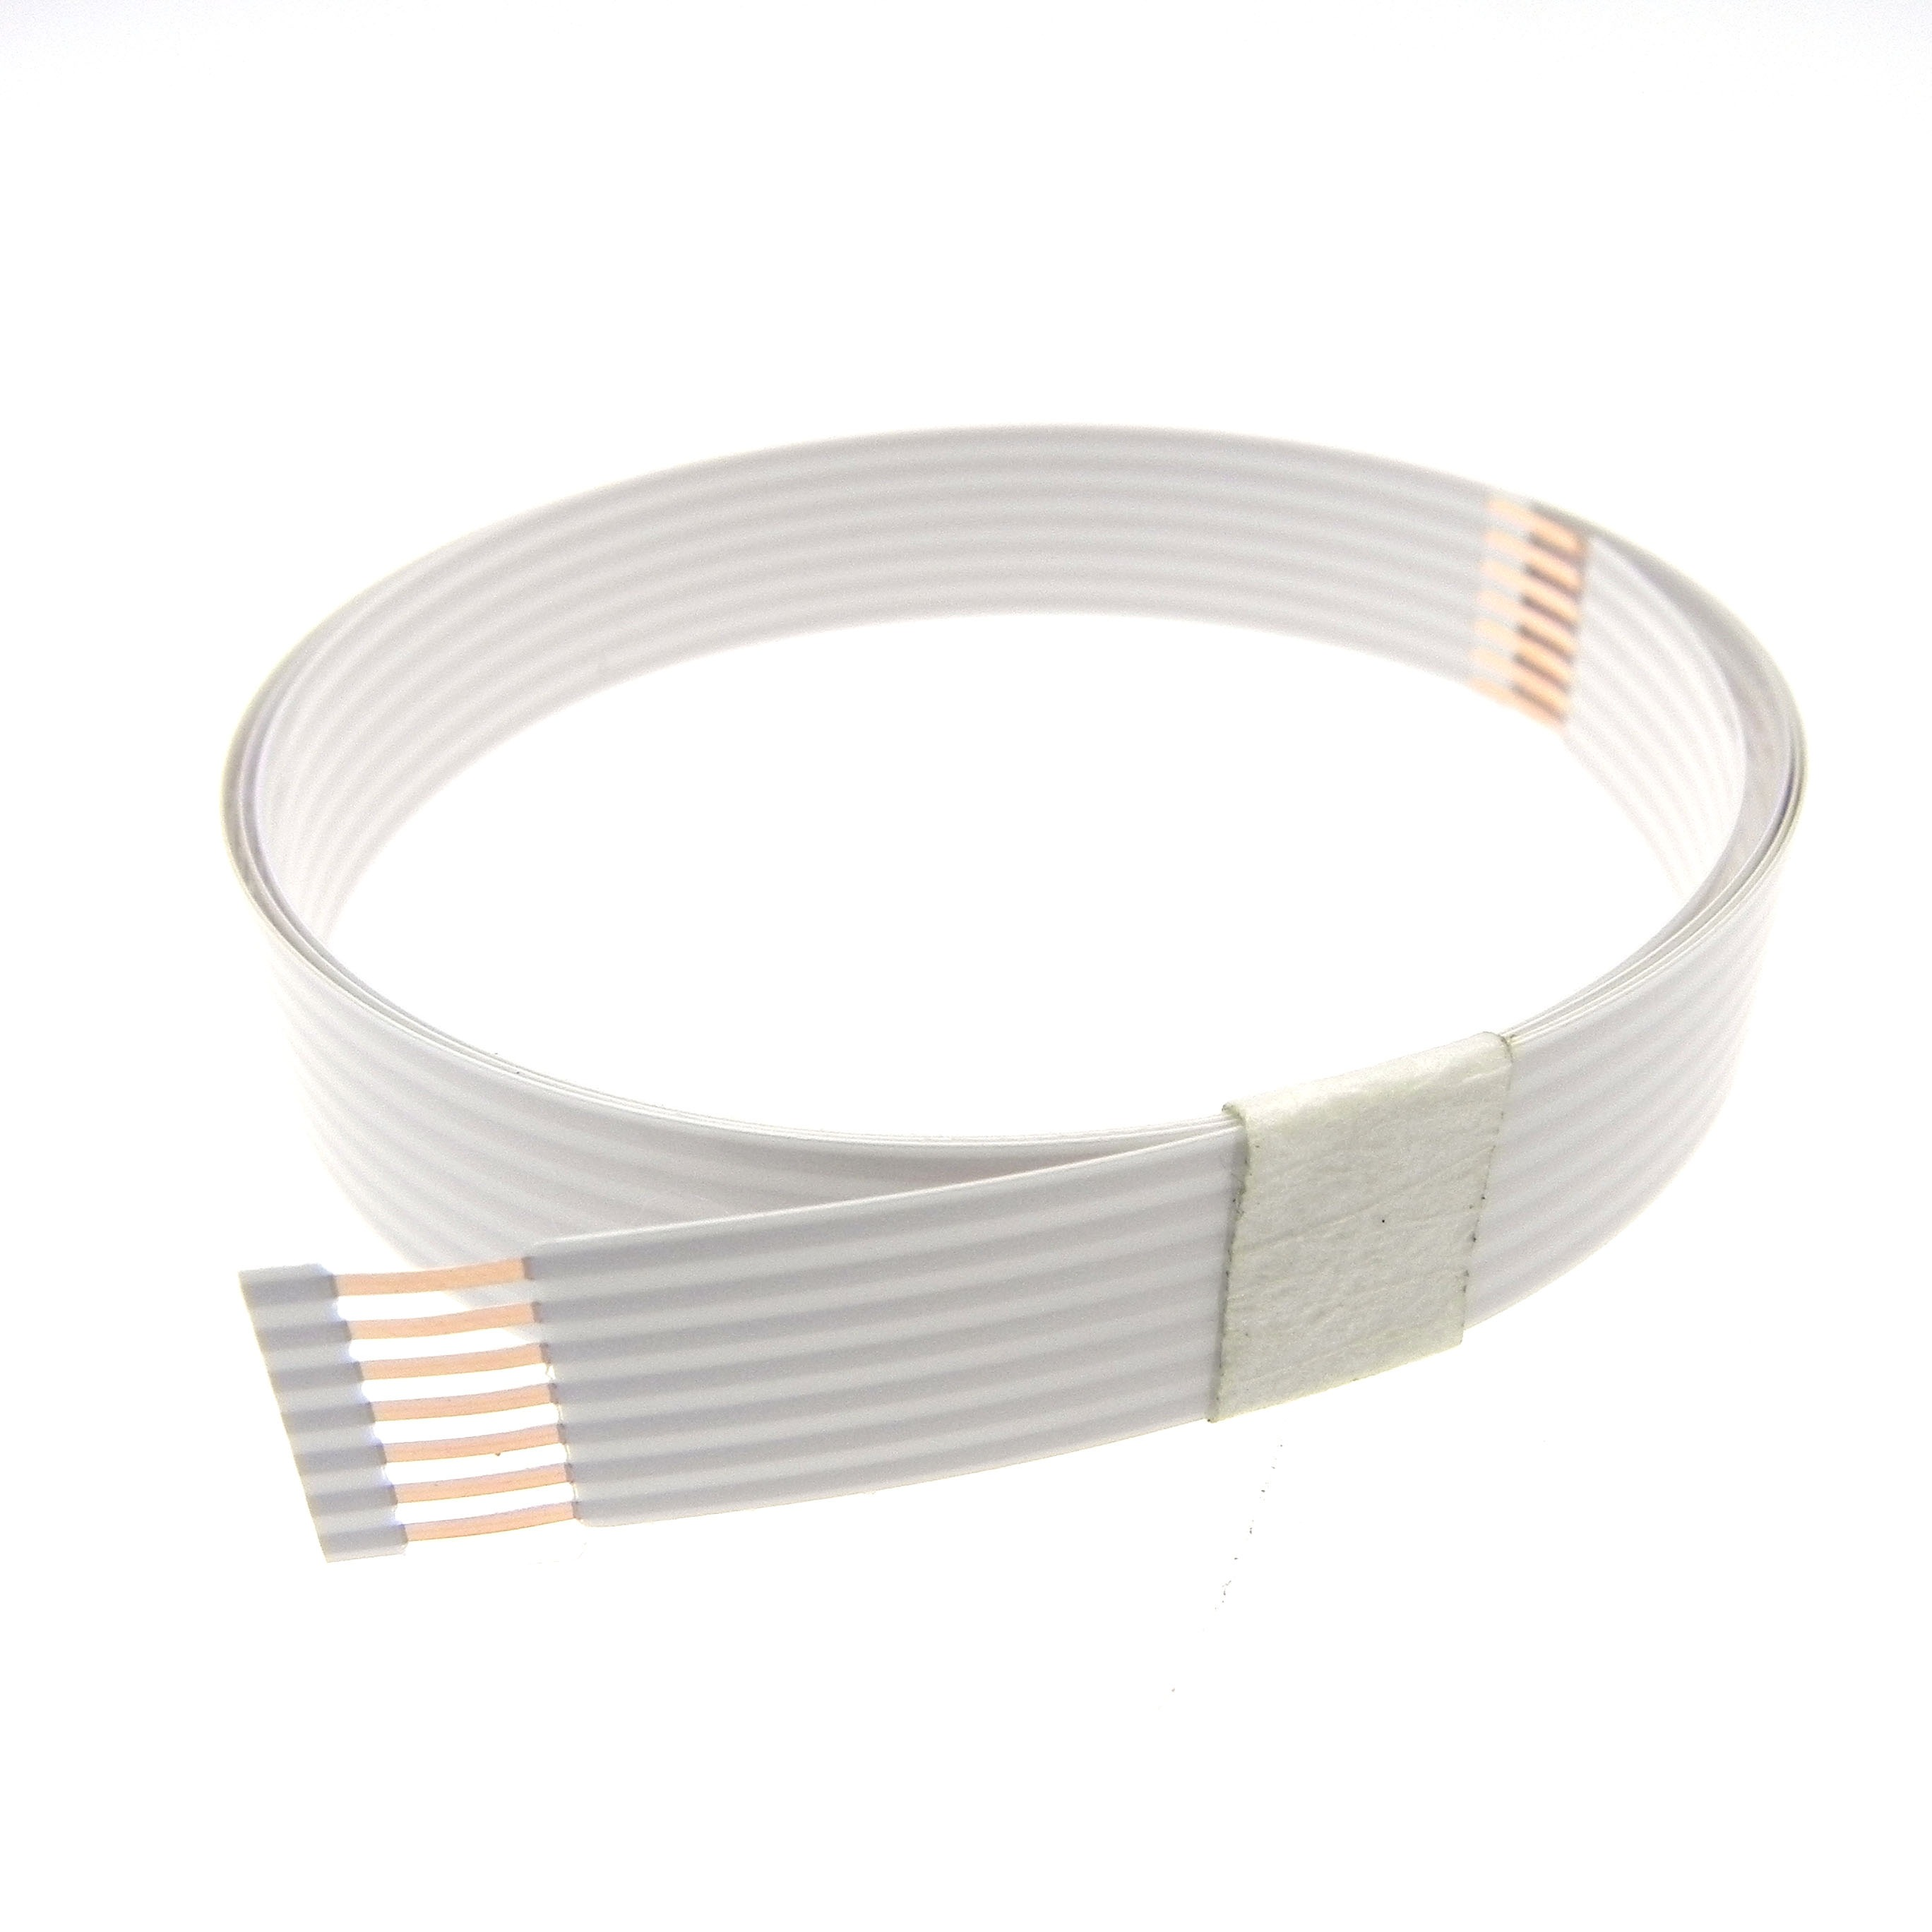 7pin 1.27mm pitch 538mm long airbag FFC cable